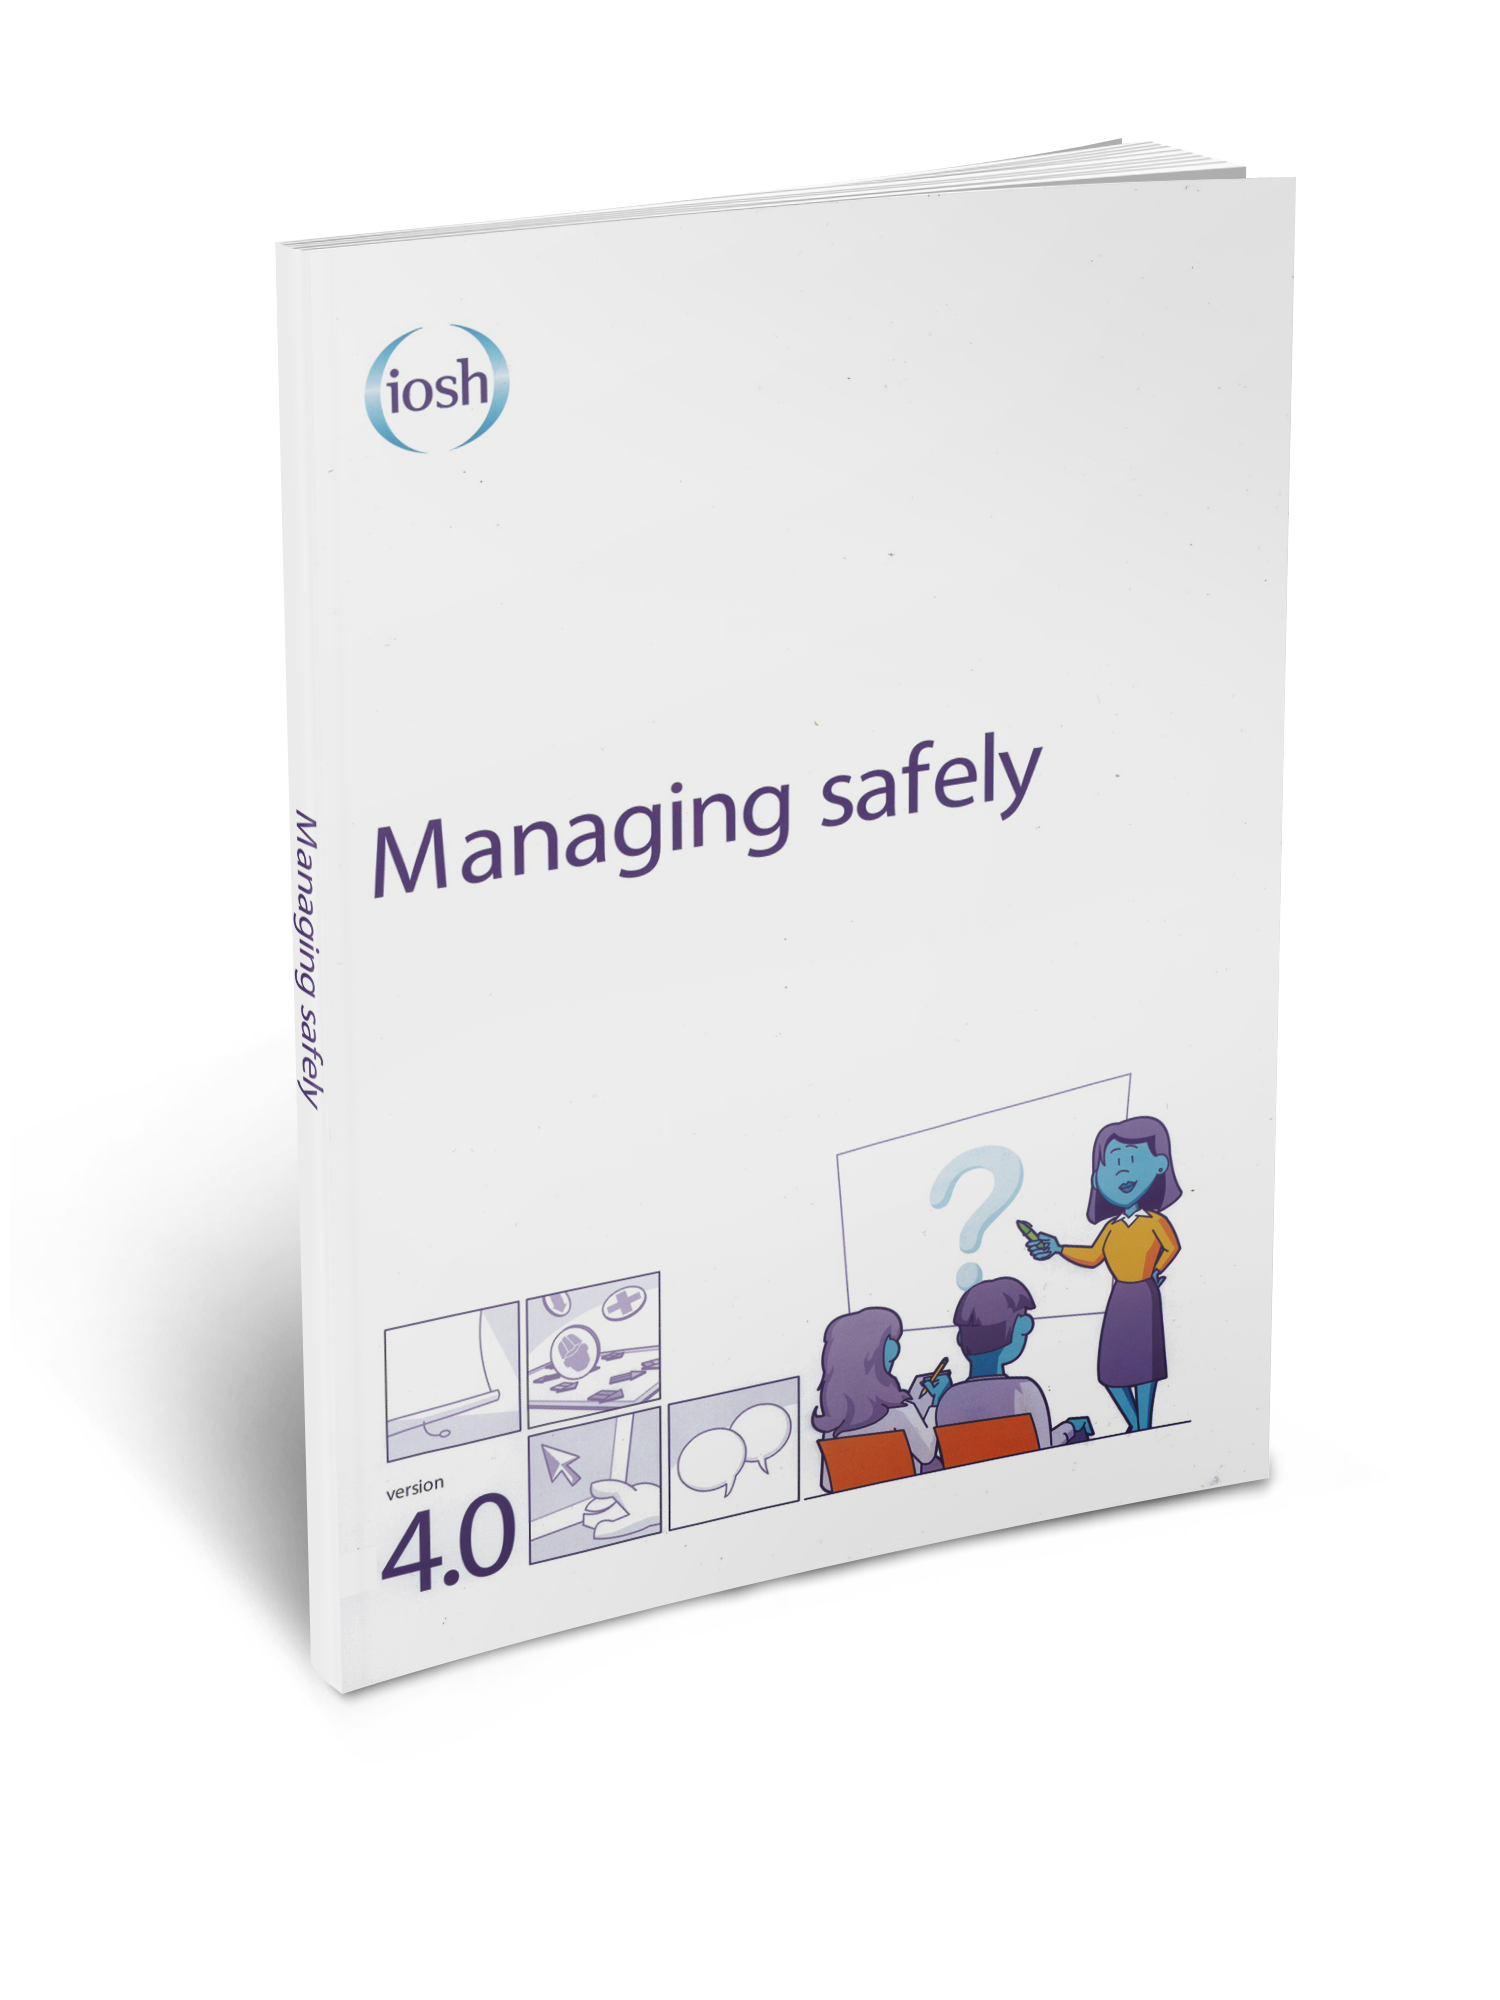 work safety online training